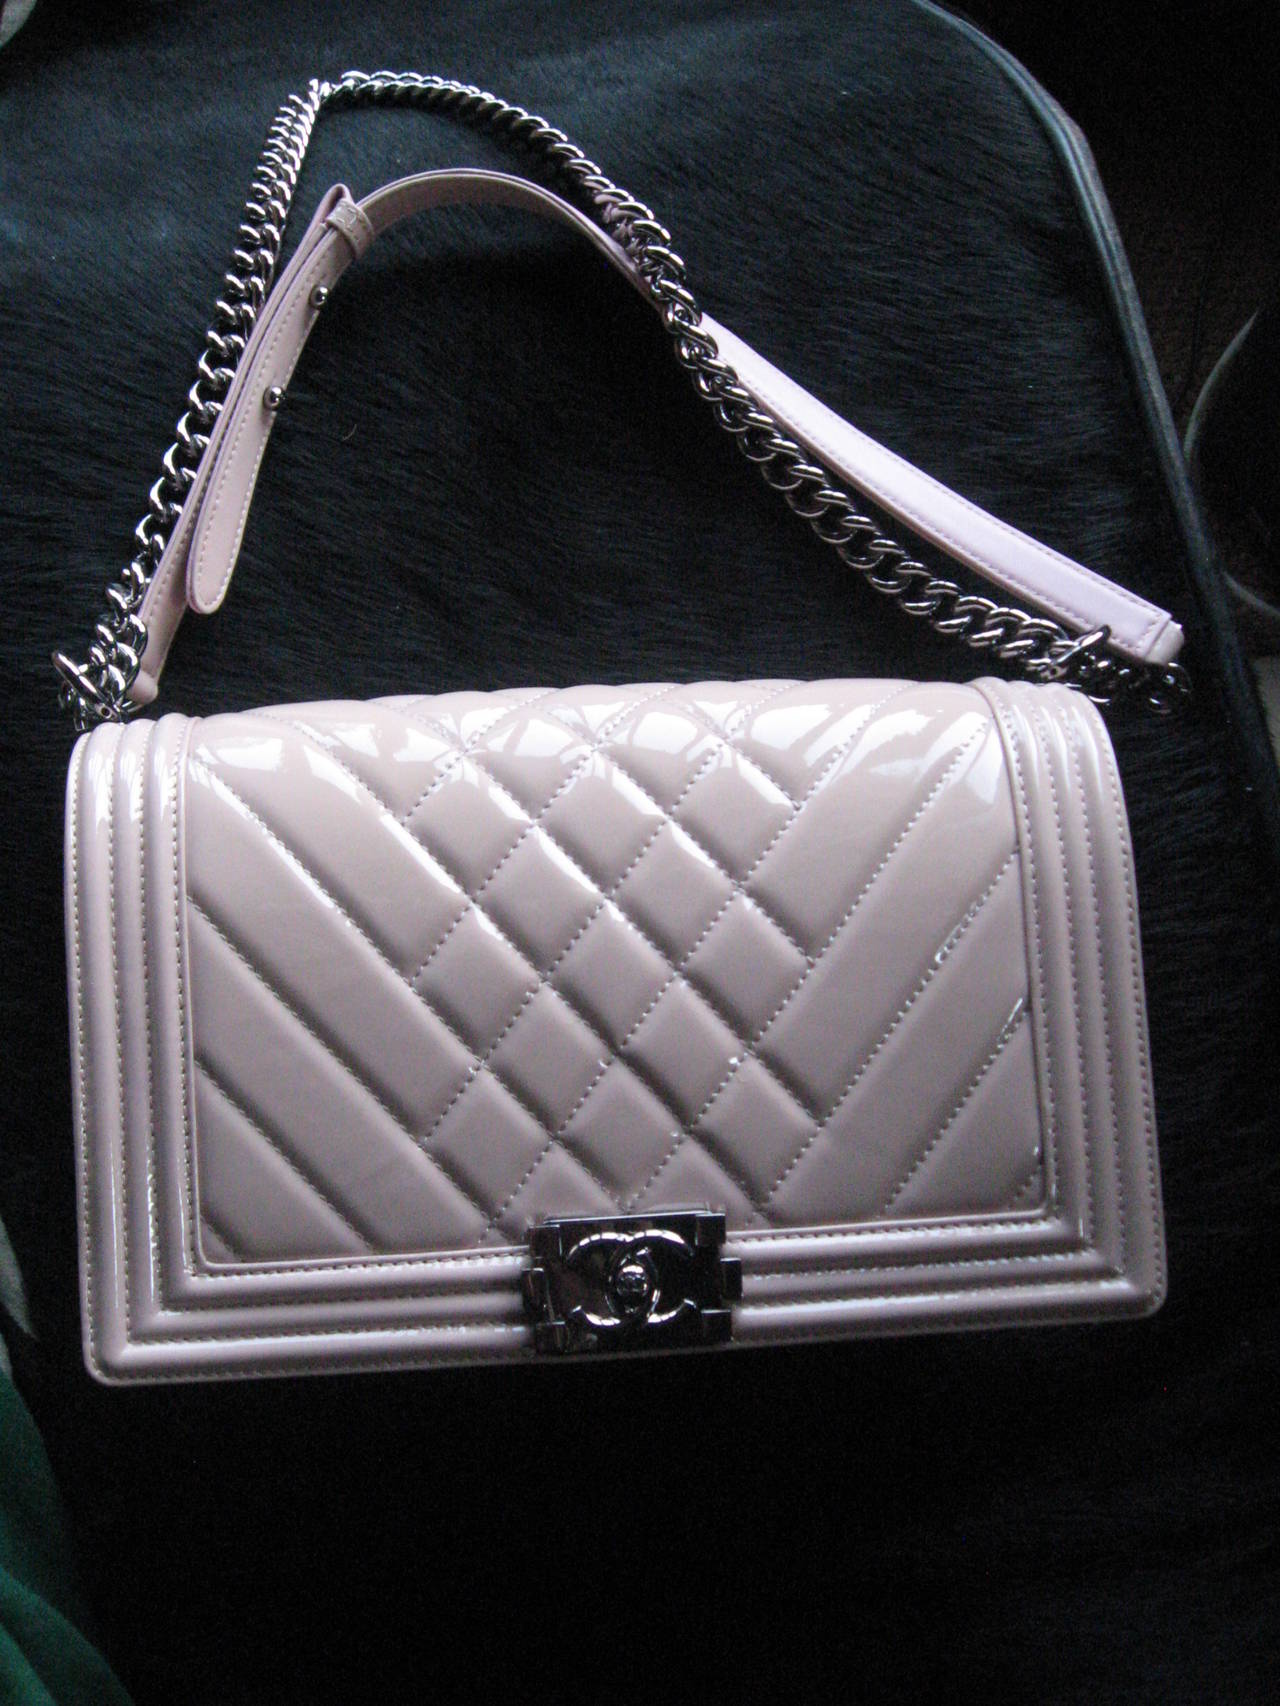 Chanel Light Pink Patent Leather Medium Chevron Quilted Boy Bag ...CC Push Lock Closure  Ruthenium Chain and Lock Hardware in New Condition ..... with Dust Bag, Care Book,Card Id..